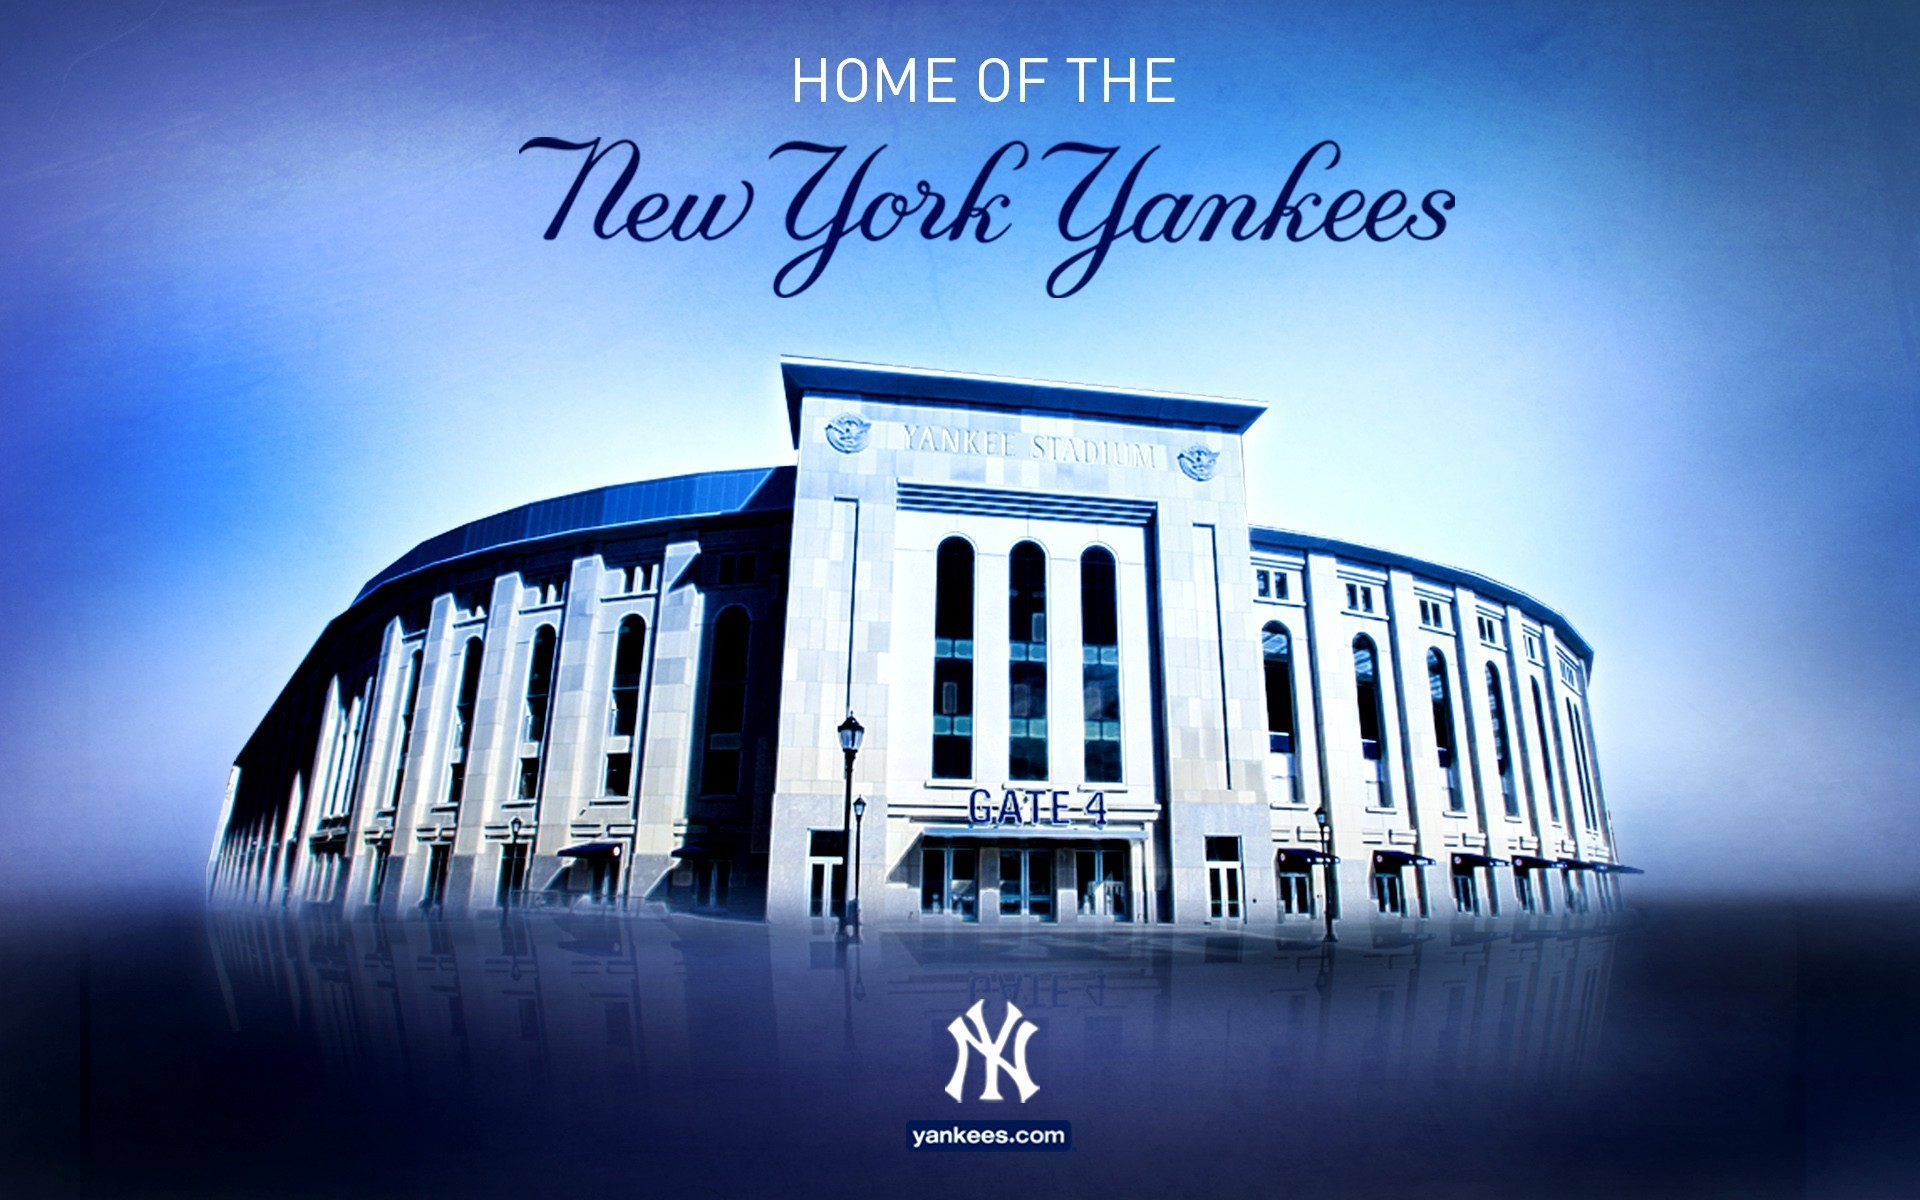 1920x1200 #1879157, new york yankees category - Free download new york yankees picture